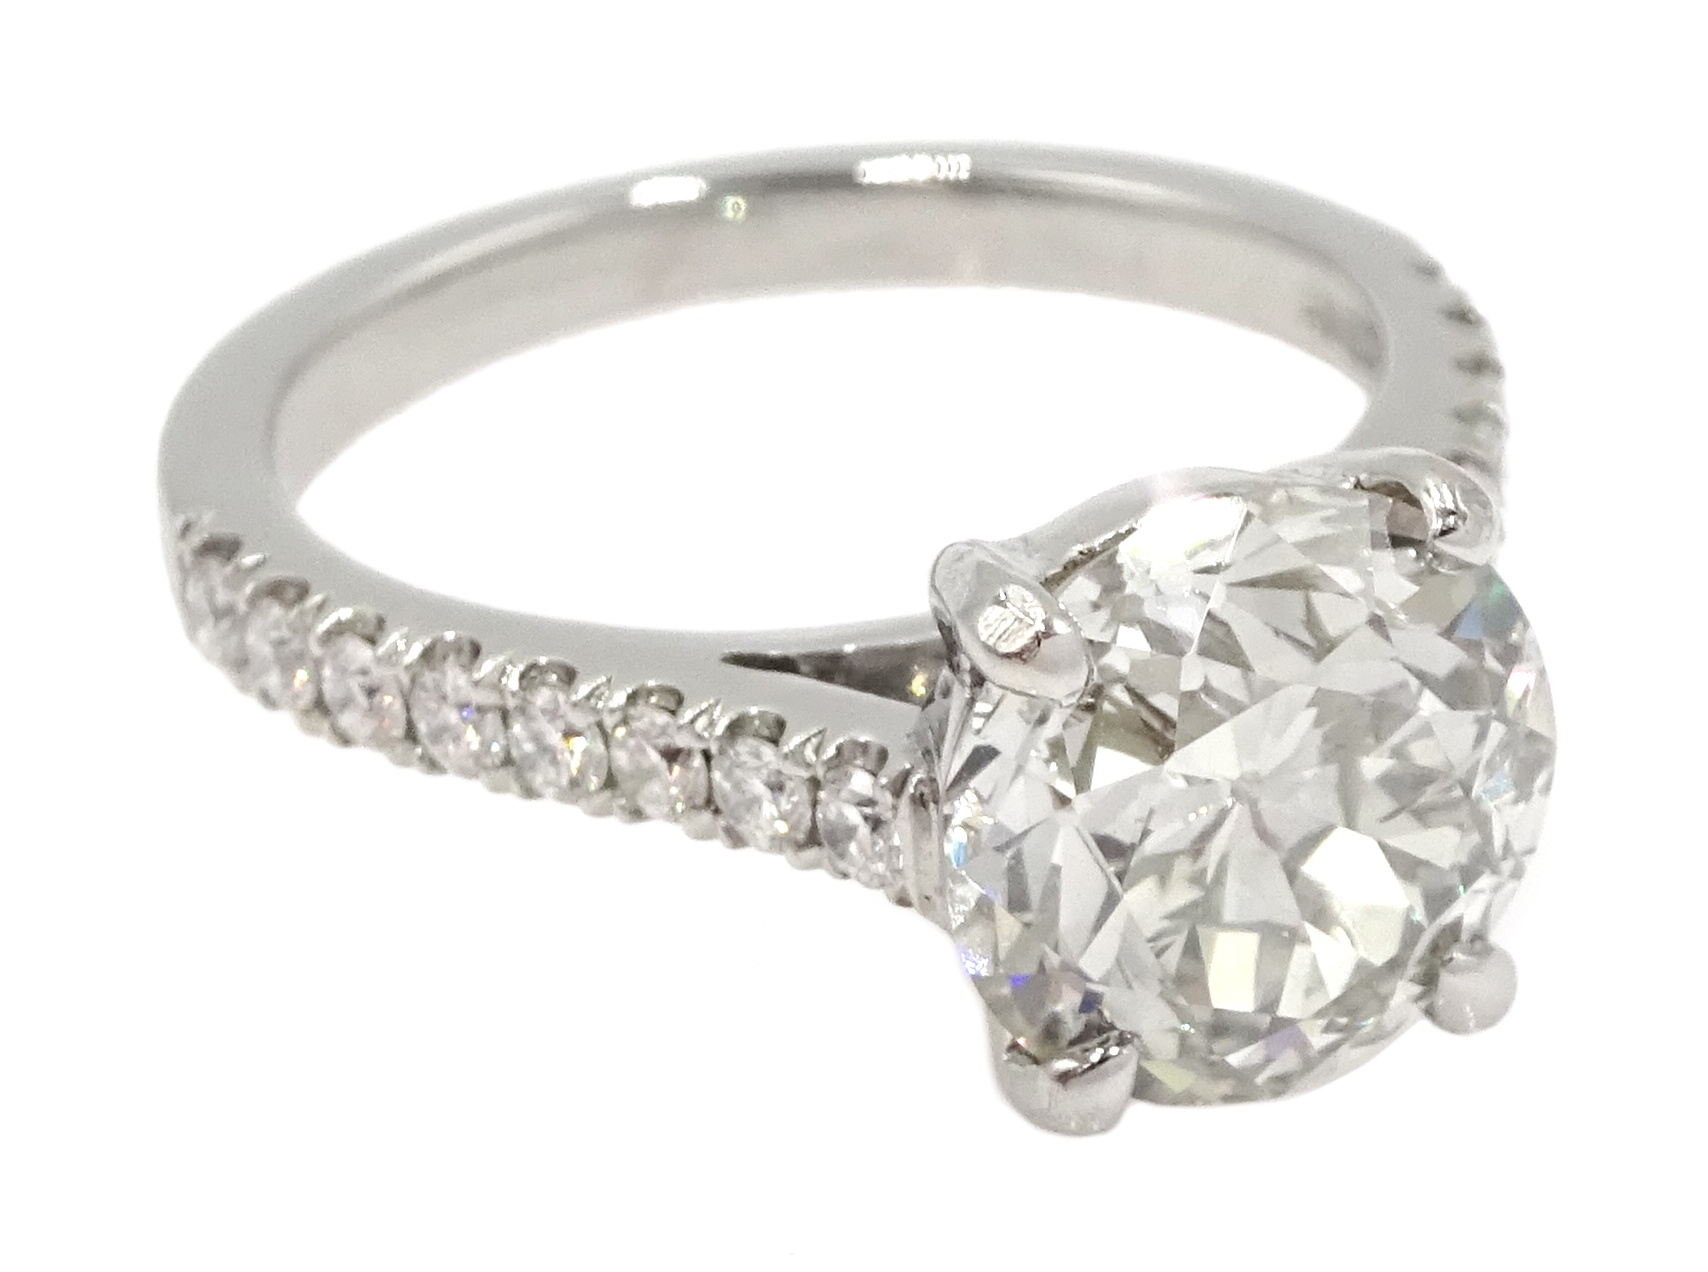 Platinum old cut diamond solitaire ring with diamond set shoulders, hallmarked, central diamond 2.10 - Image 3 of 9